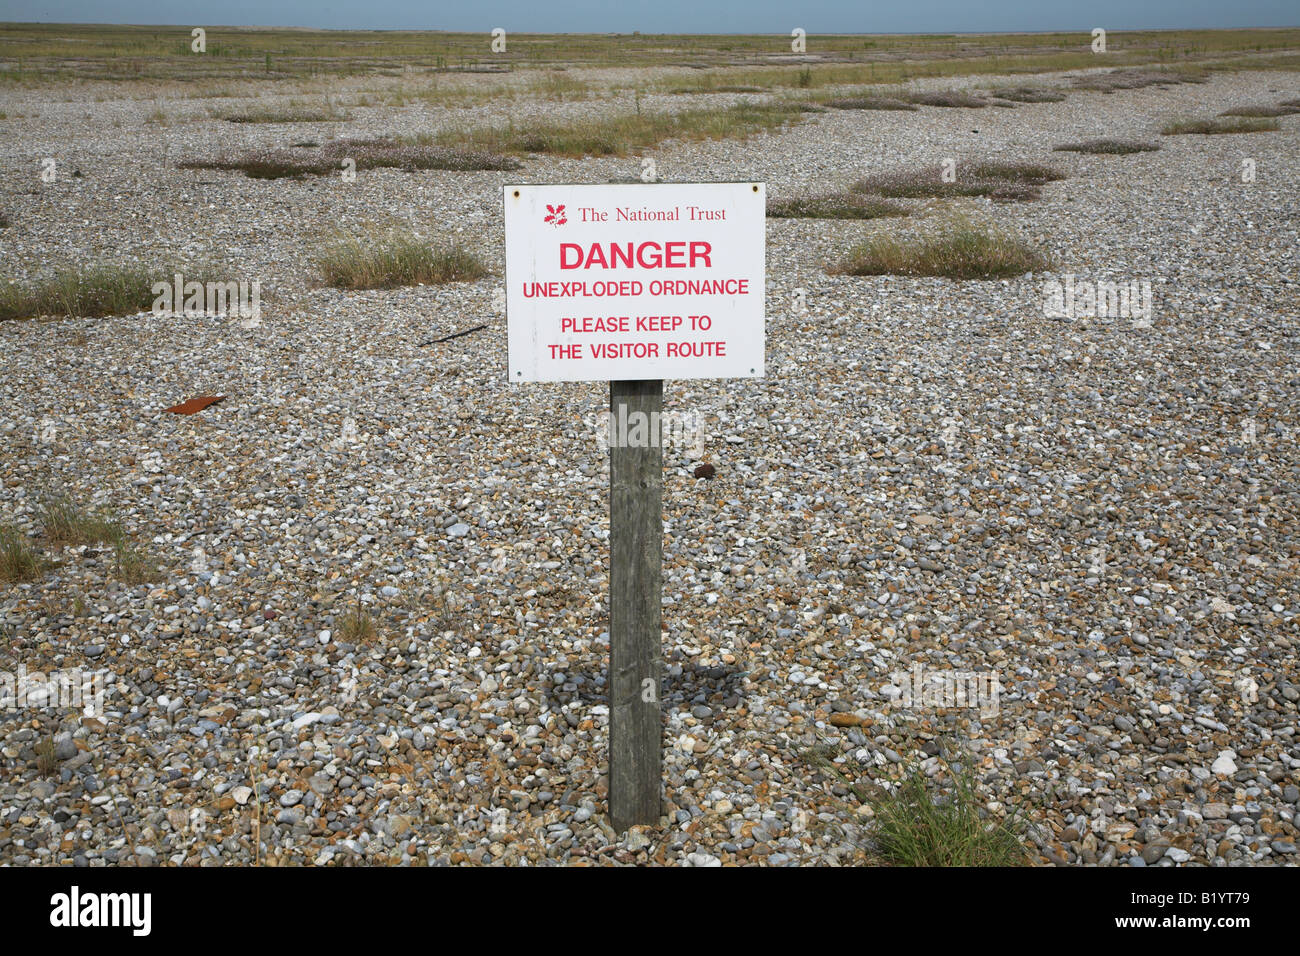 Danger unexploded armaments sign in shingle Orford Ness Suffolk England - Stock Image